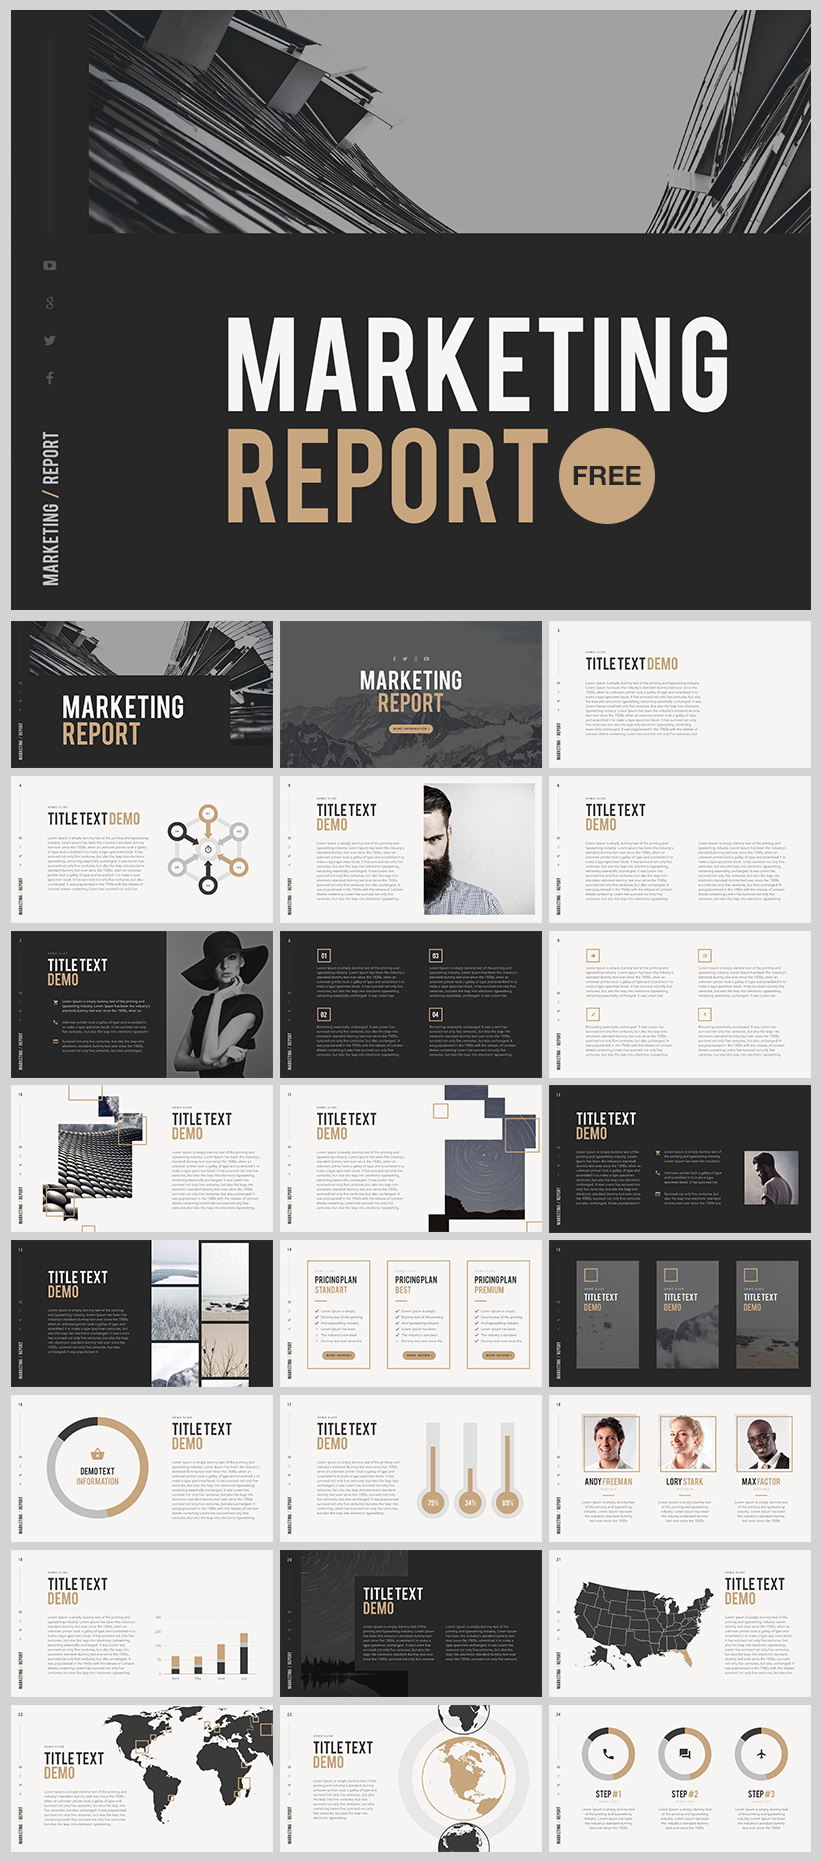 Marketing Report #Template #Powerpoint | DigitalMarket | Pinterest ...